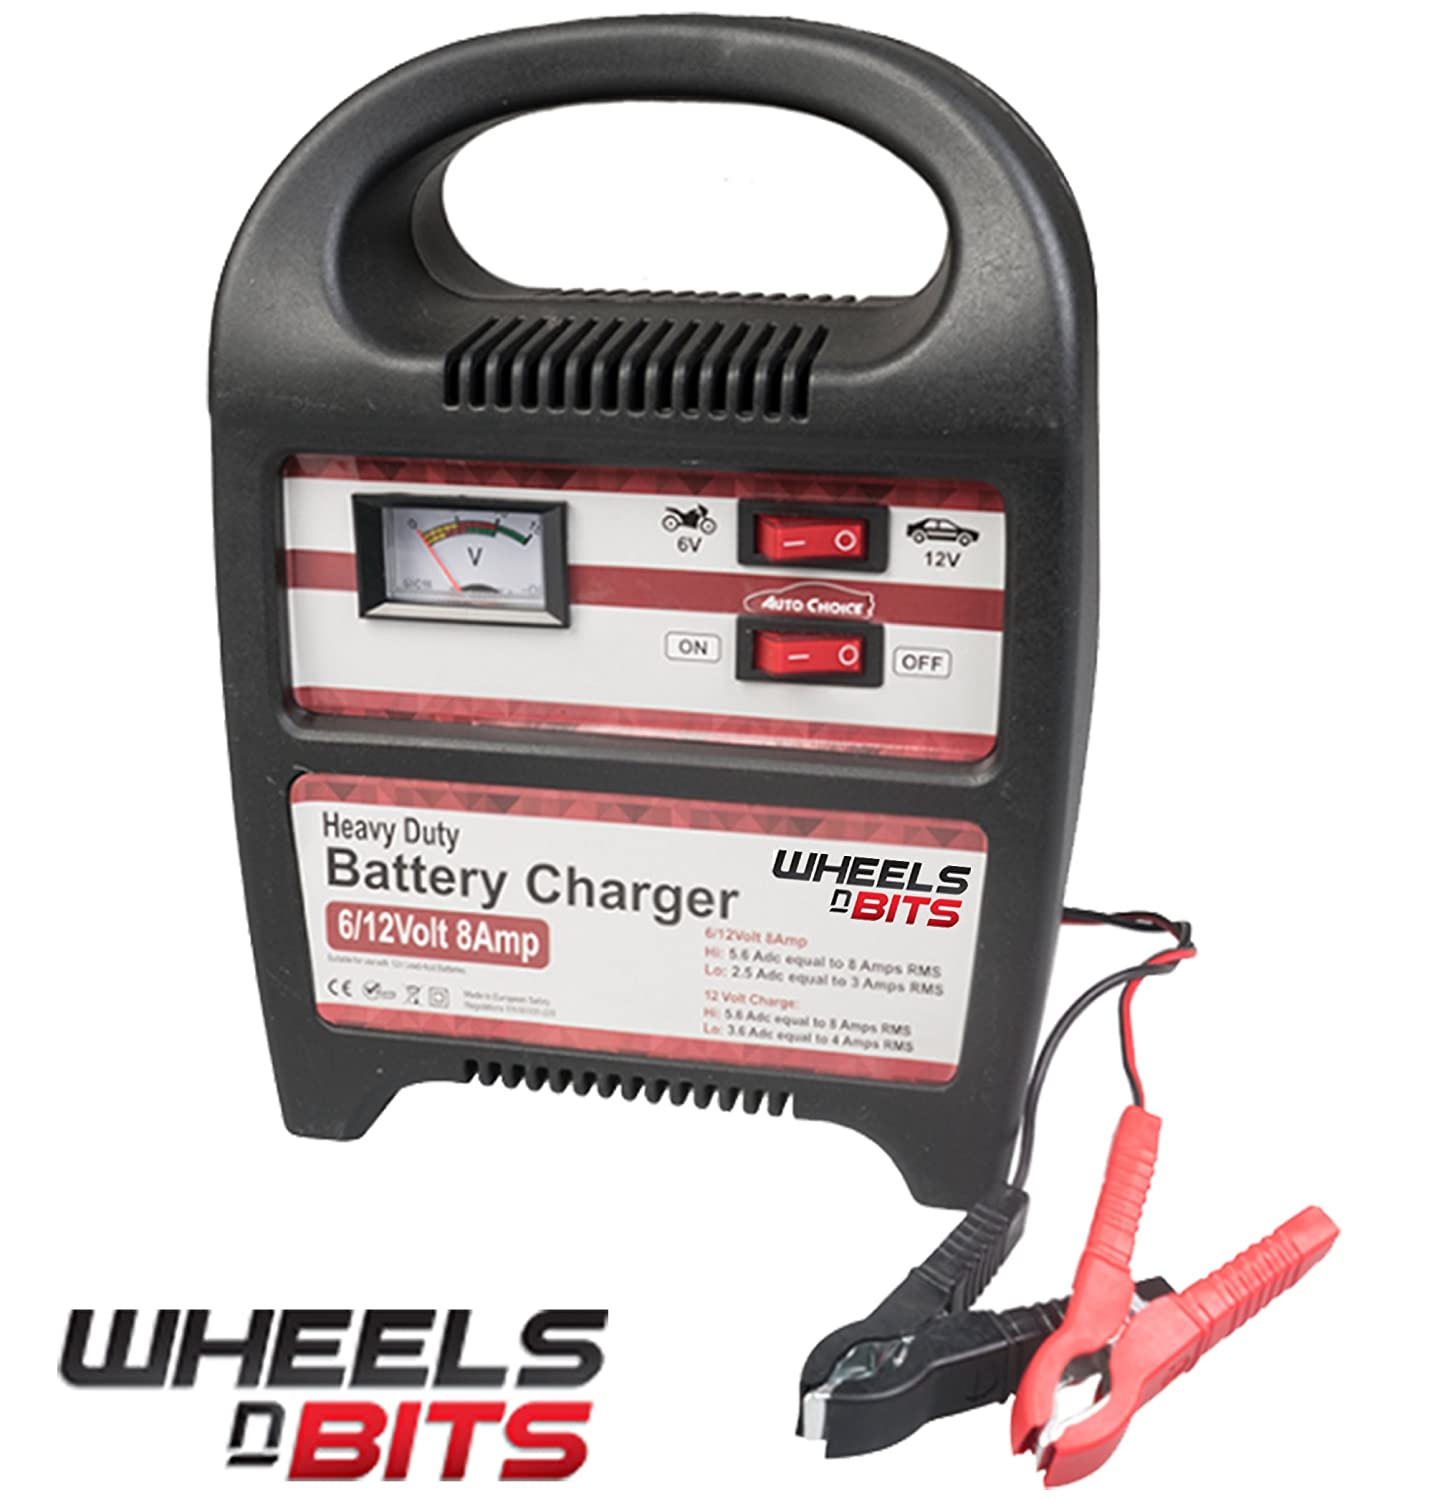 New WheelsNBits® 8AMP 6 or 12 V Volt Heavy Duty Vehicle Battery Charger Car Van Motor Bike Quads Lawn movers etc Compact Portable Electric with 3 pin UK Plug UP to 110 amp battery Suitable For Lead acid Batteries With Trickle or Fast Charge Function